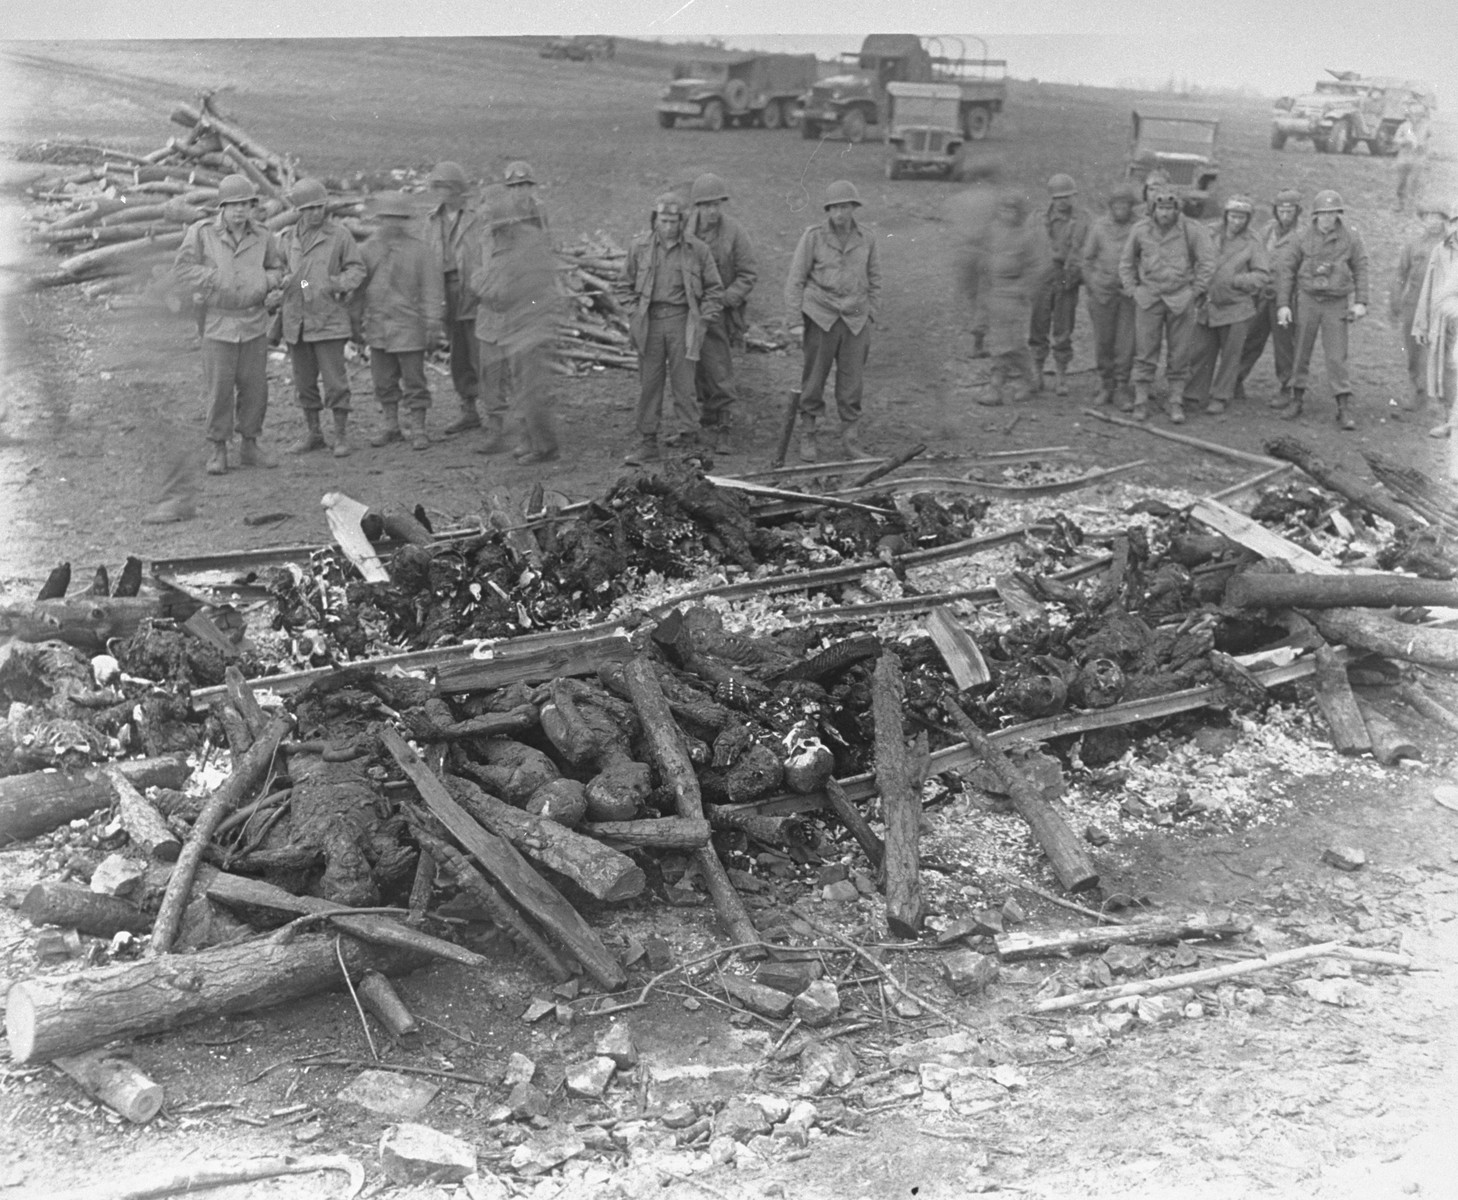 "While on an inspection tour of the newly liberated Ohrdruf concentration camp, American soldiers view the charred remains of prisoners that were burned upon a section of railroad track during the evacuation of the camp.  The original caption reads ""The charred remains of burned prisoners are shown shortly after capture of the area by Third U.S. Army troops.  The Nazis exhumed and burned 1,606 murdered victims in six days in an attempt to destroy the evidence on orders from higher headquarters.""  Among those pictured are George Stantis (second from left, tentative identification), Jack Caminer (fifth from left with goggles), a German-Jewish immigrant, who served in military intelligence, and Staff Sergeant  Maynard B. Cohen or Americo Venuto is eighth from the left, standing alone in the middle.   Captain Ralph Kopansky is pictured on the far right, with a camera around his neck."